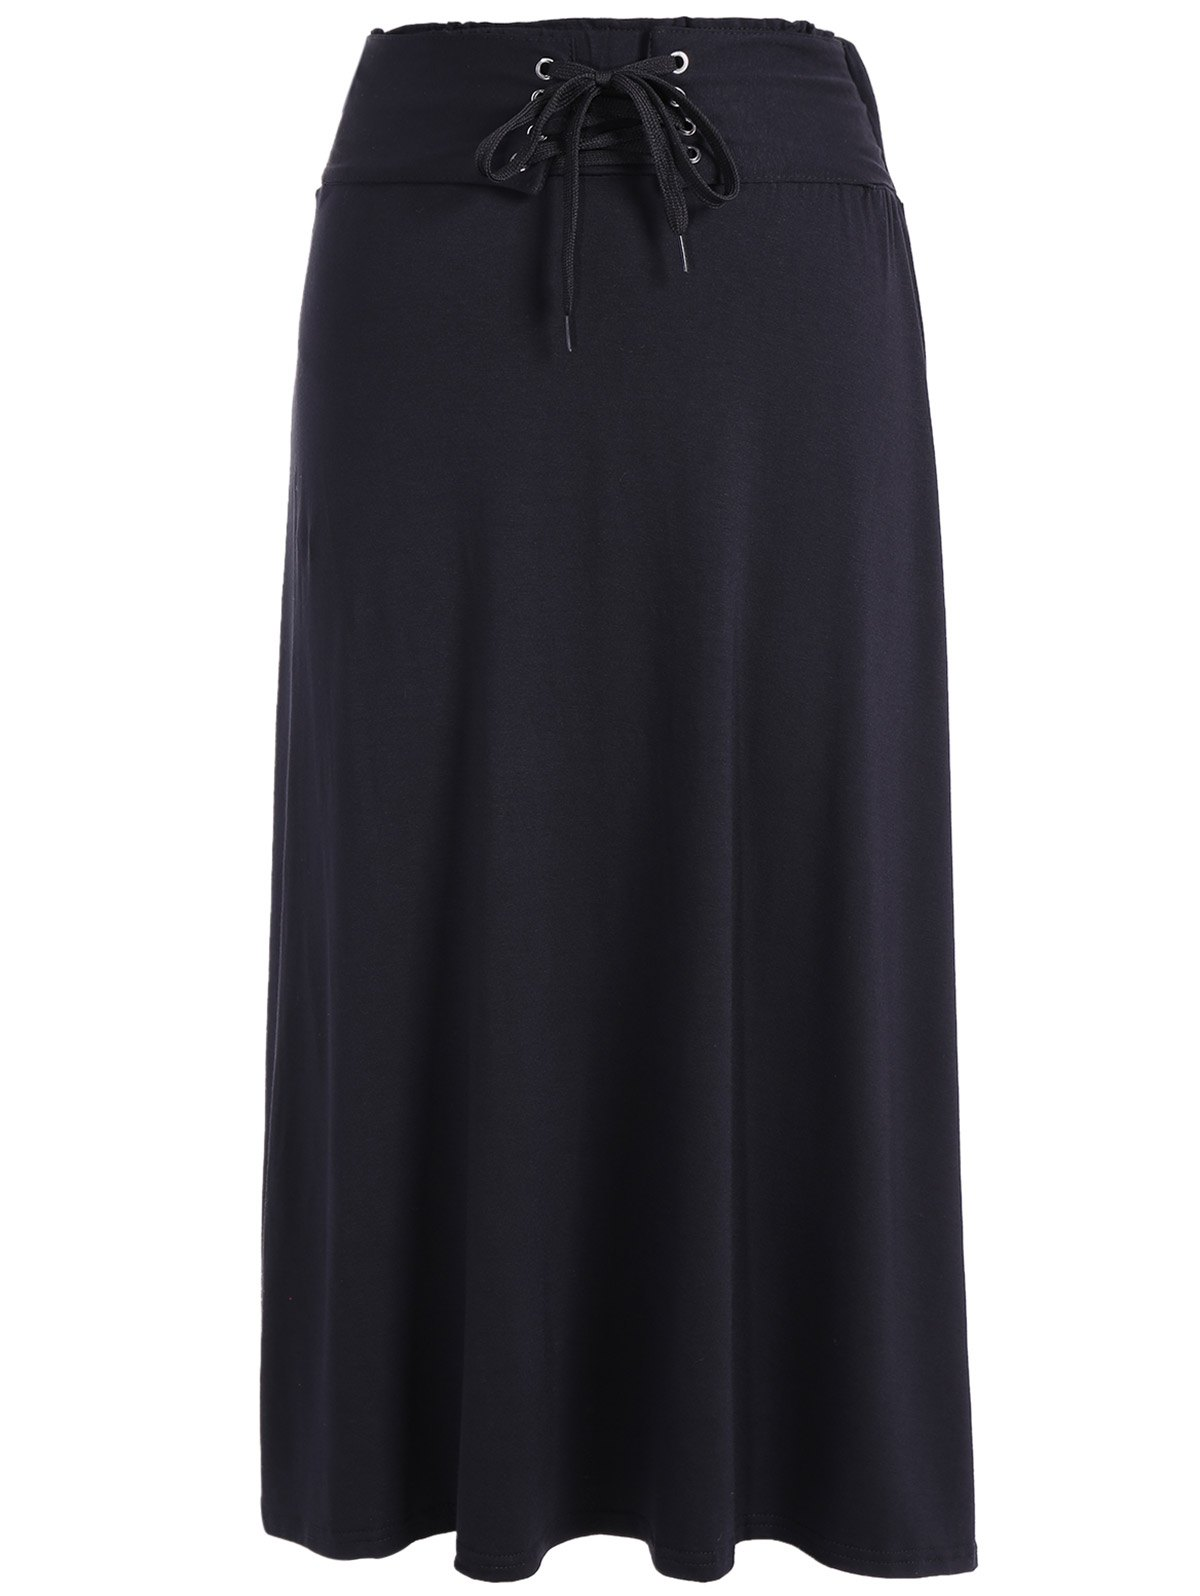 Lace-Up Maxi SkirtClothes<br><br><br>Size: ONE SIZE<br>Color: BLACK